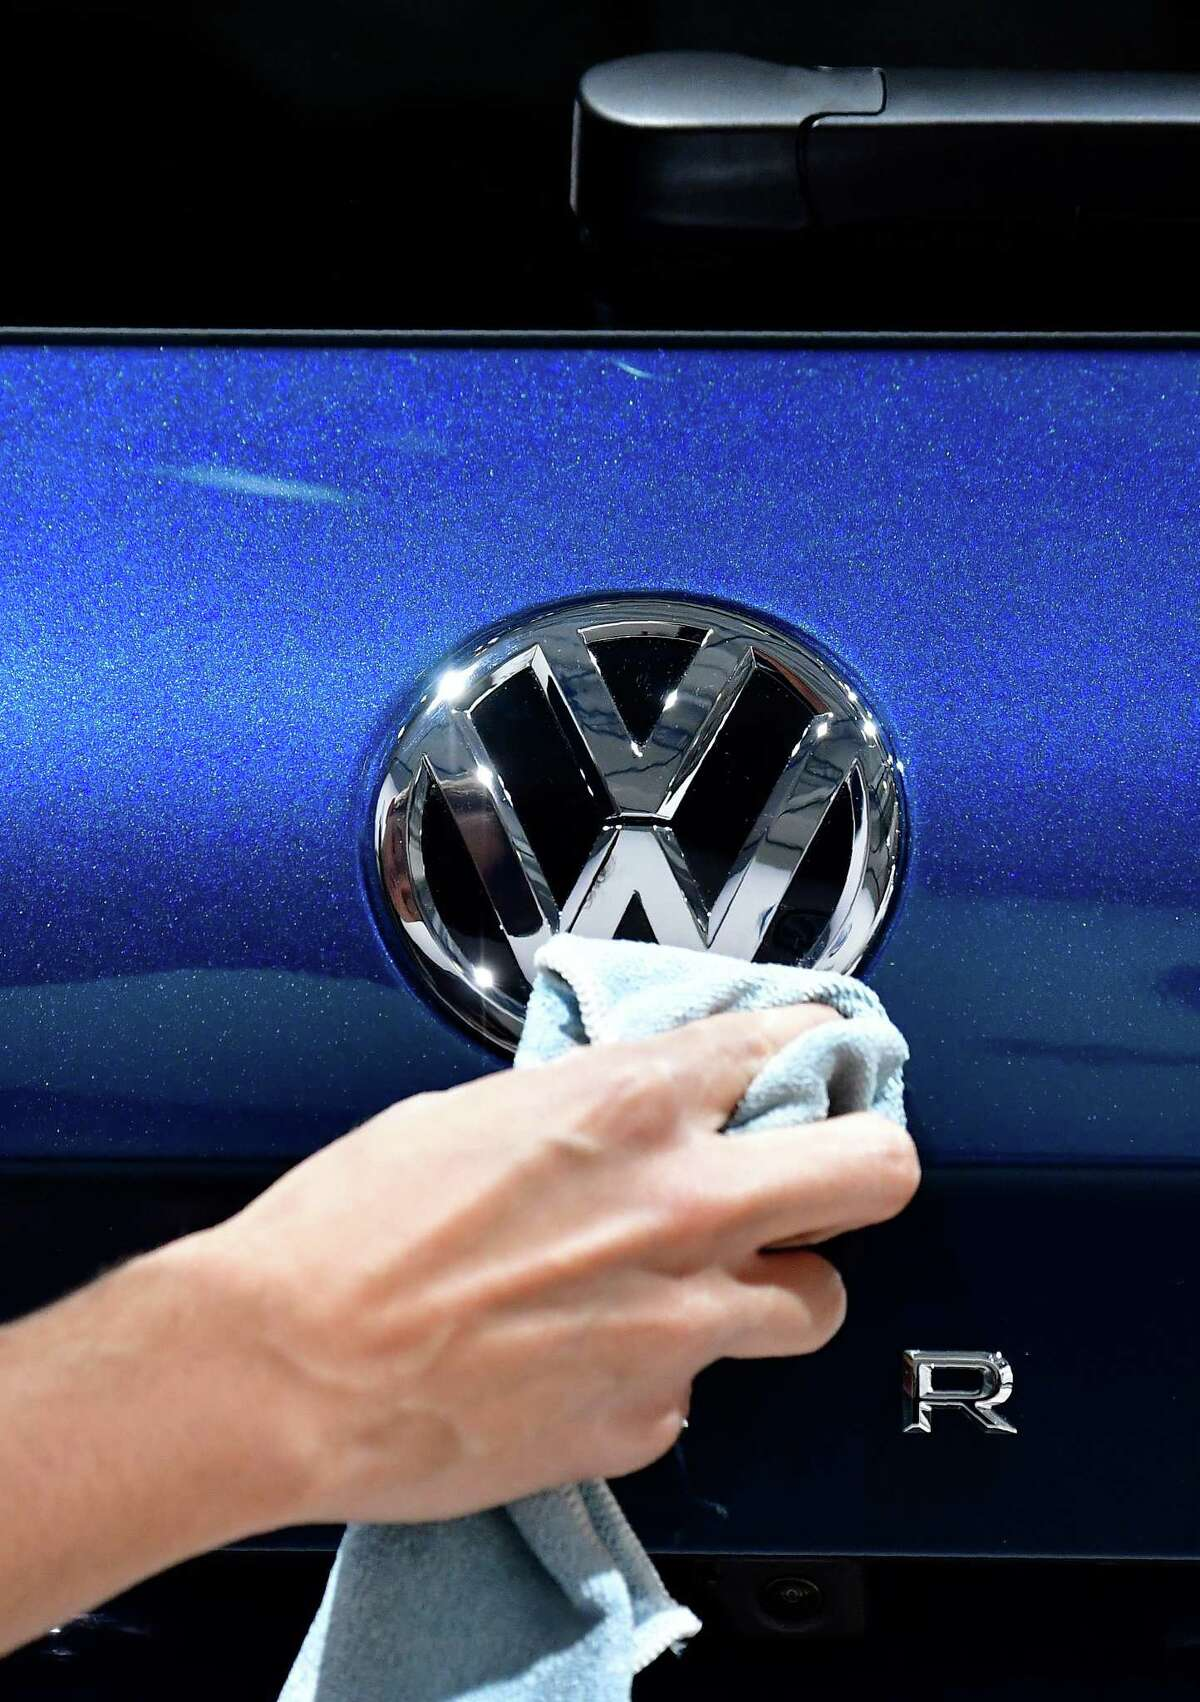 A staff member cleans a logo of an SUV VW Touareg on display ahead of the annual general meeting of German carmaker Volkswagen, in Berlin on May 3, 2018. / AFP PHOTO / Tobias SCHWARZTOBIAS SCHWARZ/AFP/Getty Images